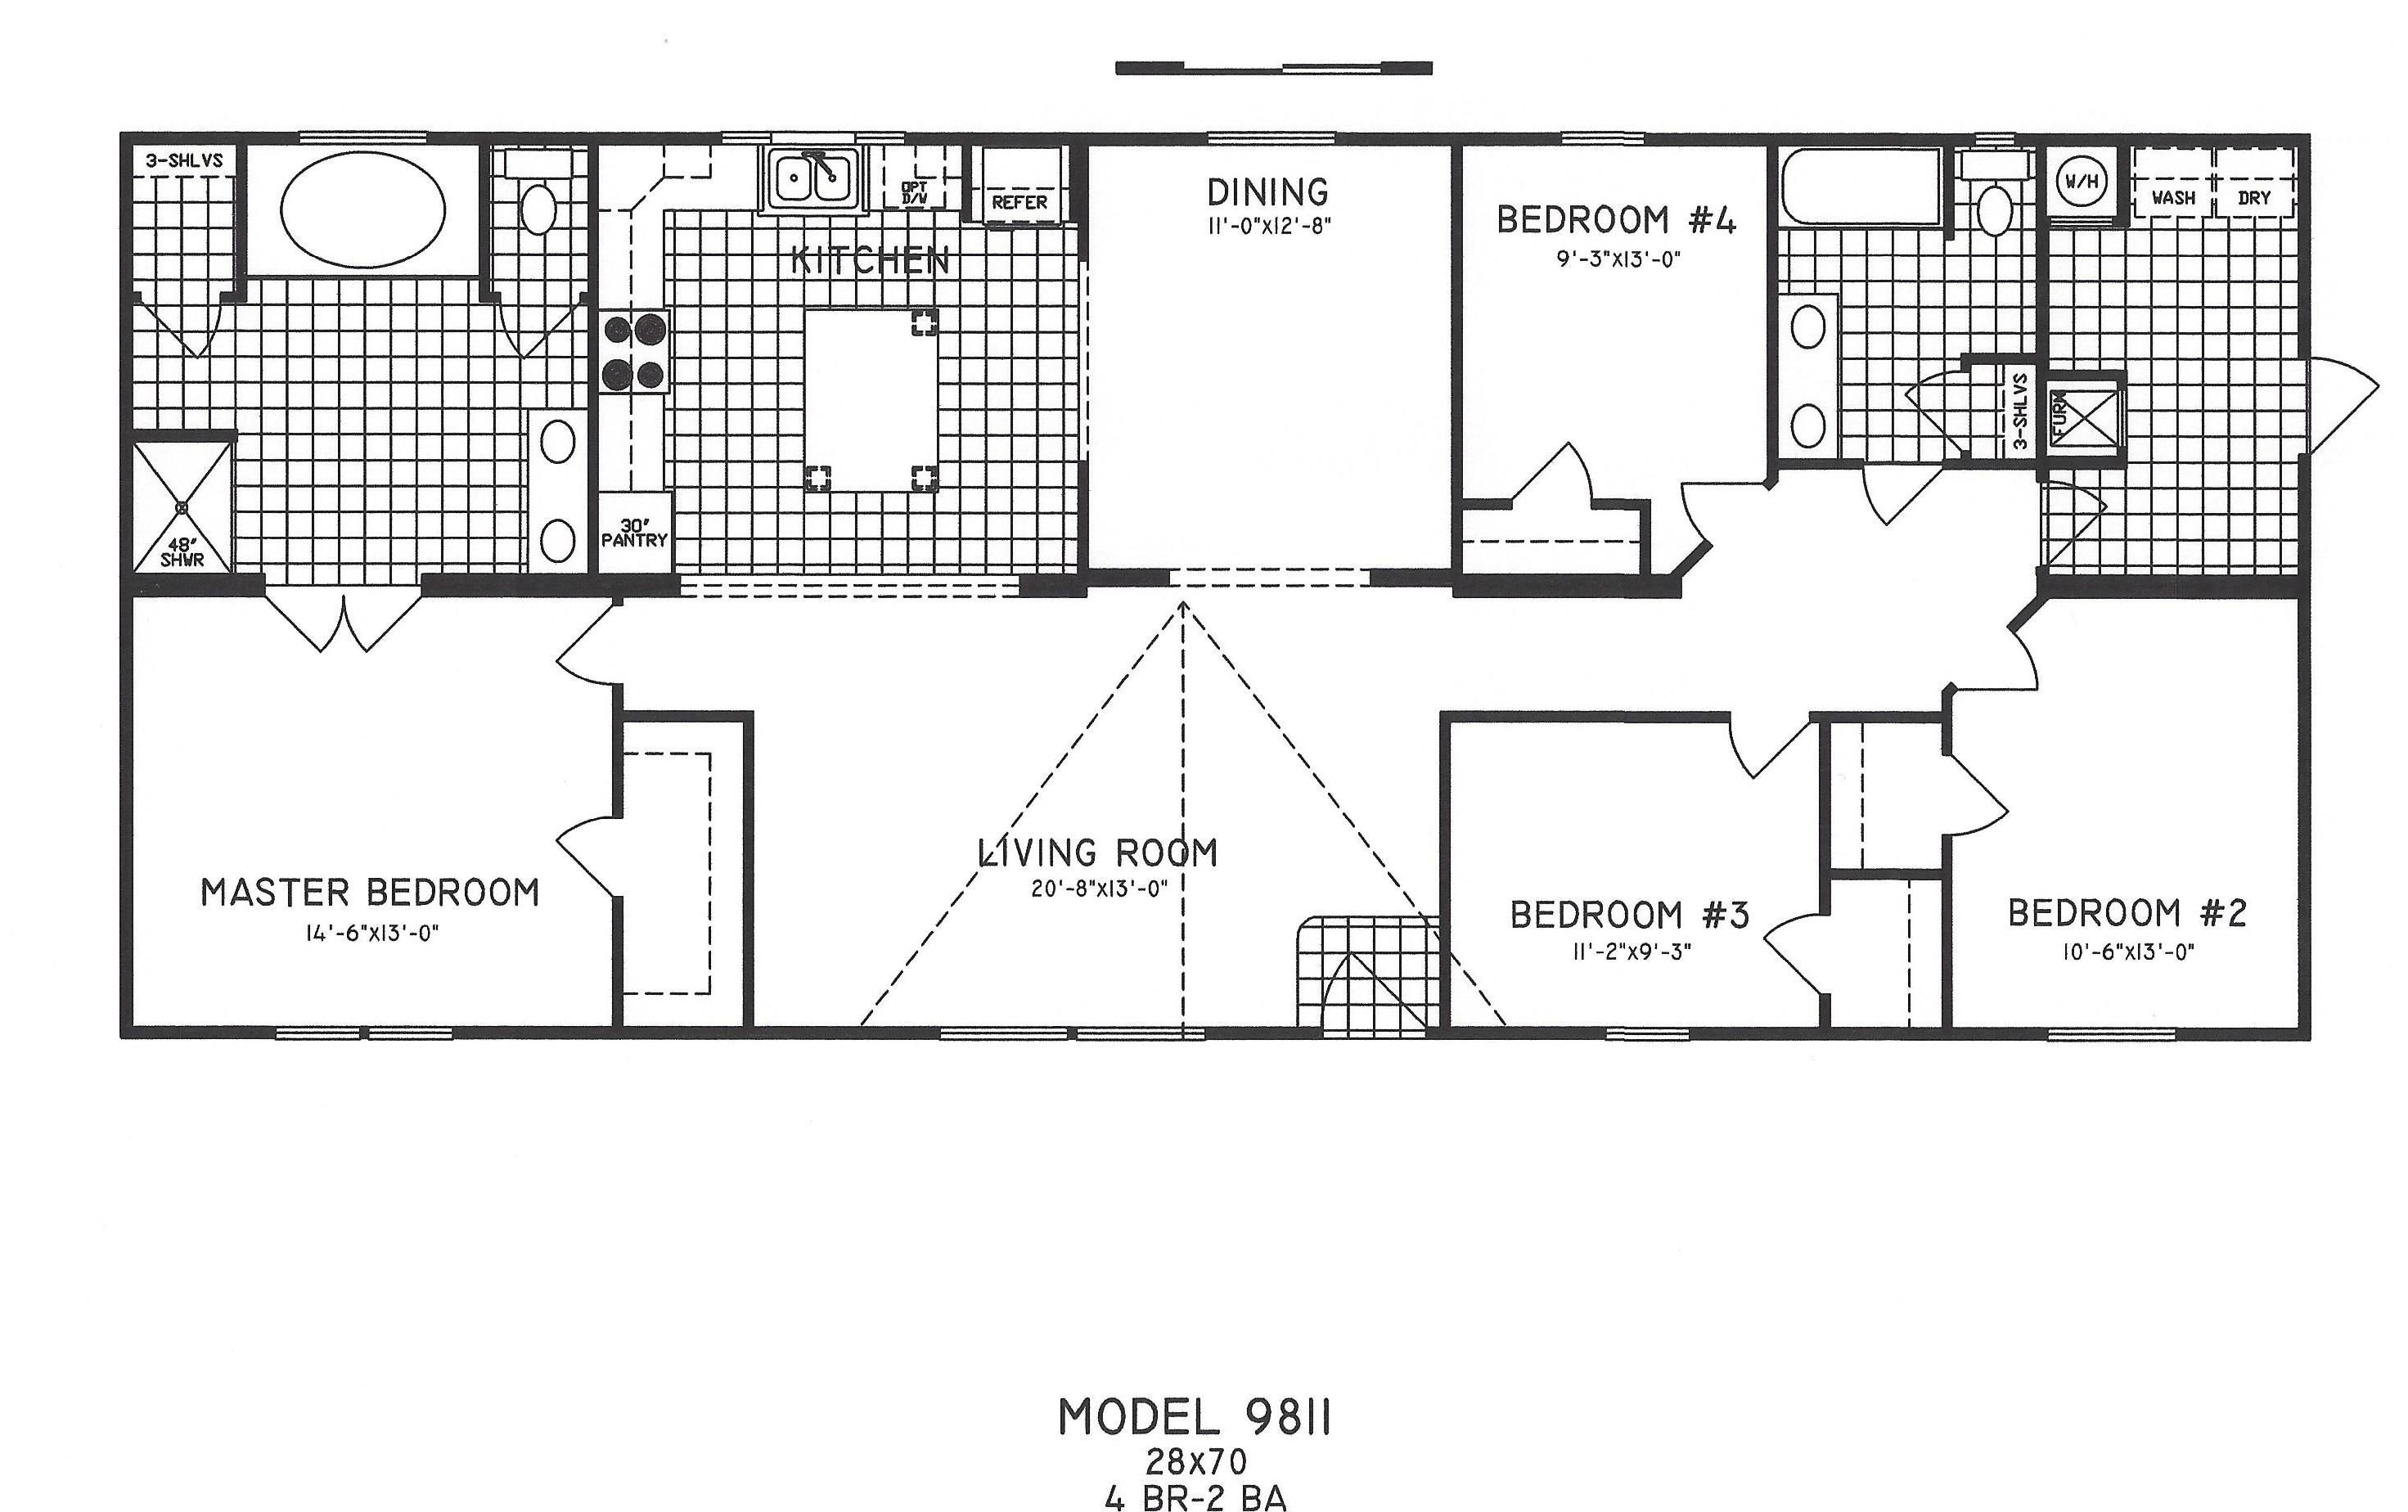 28x70 4 Bedroom 2 Bath With Large Kitchen Formal Dining Room And